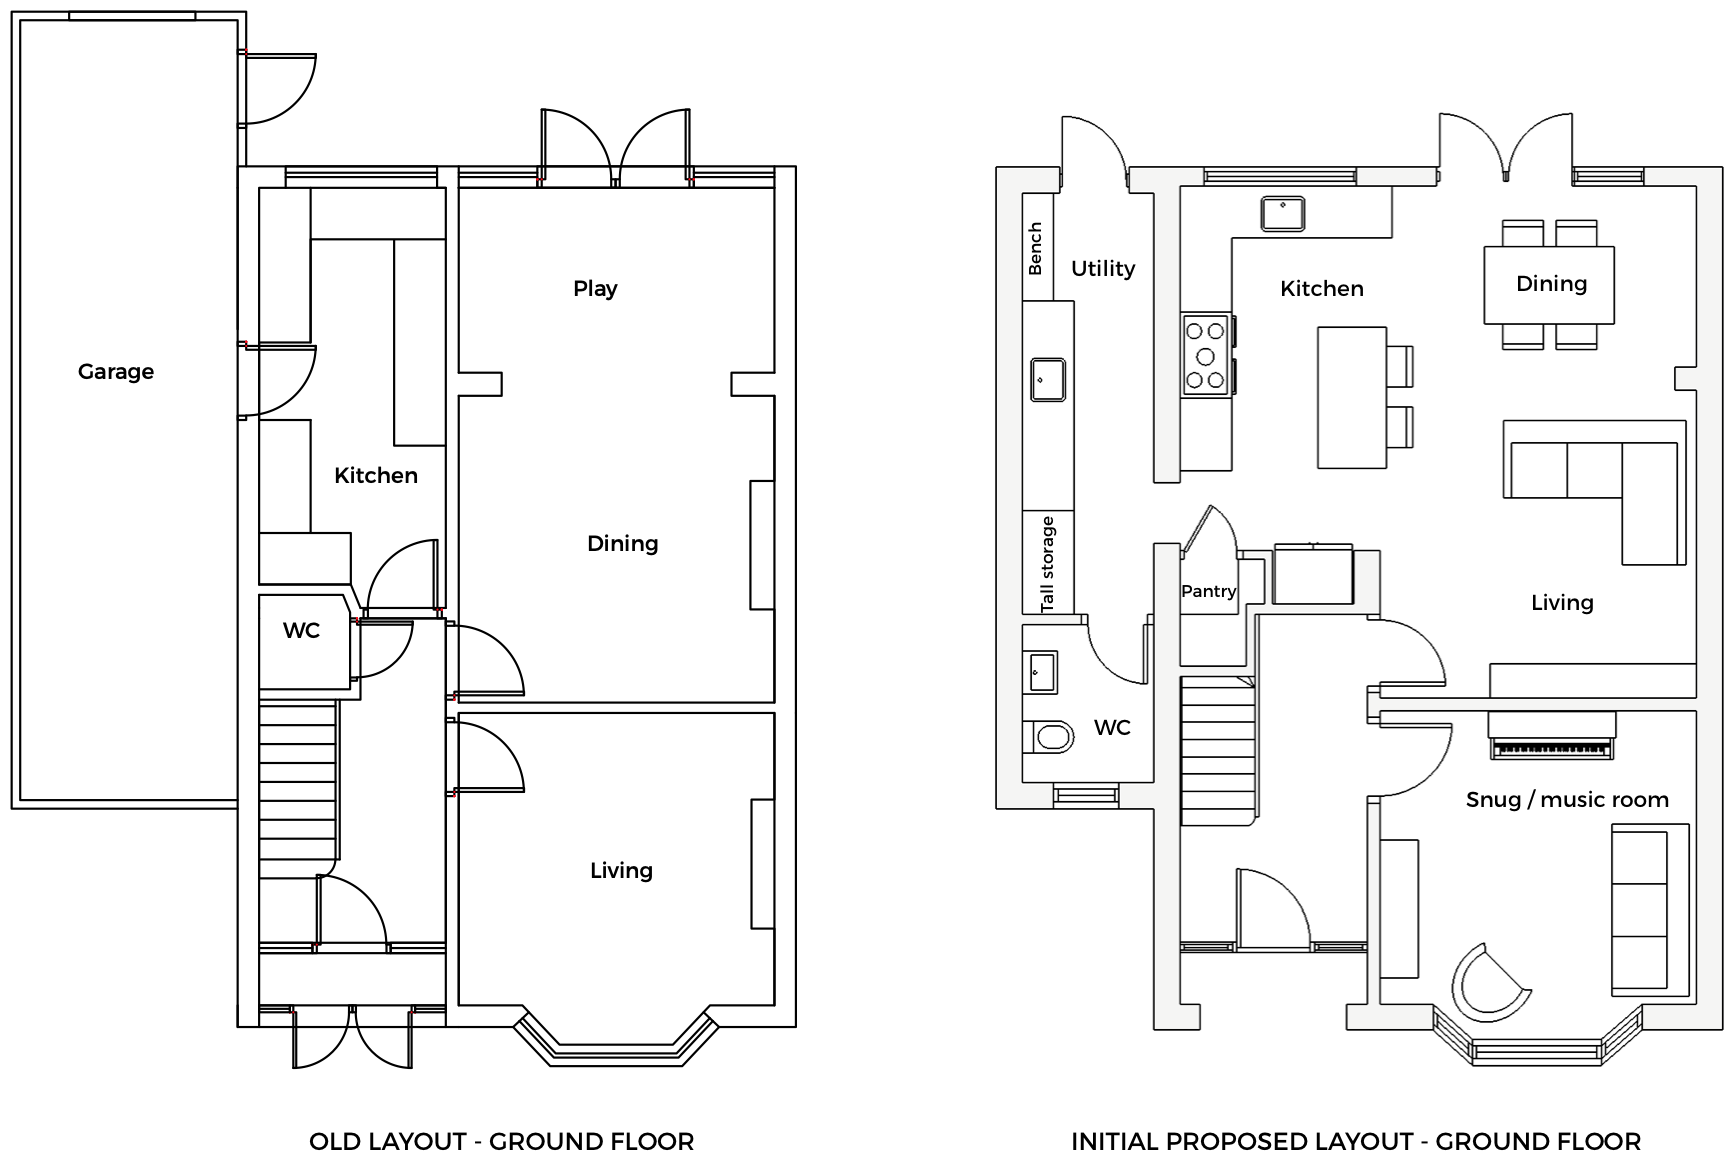 First Sense Reno - old layout vs initial proposed layout